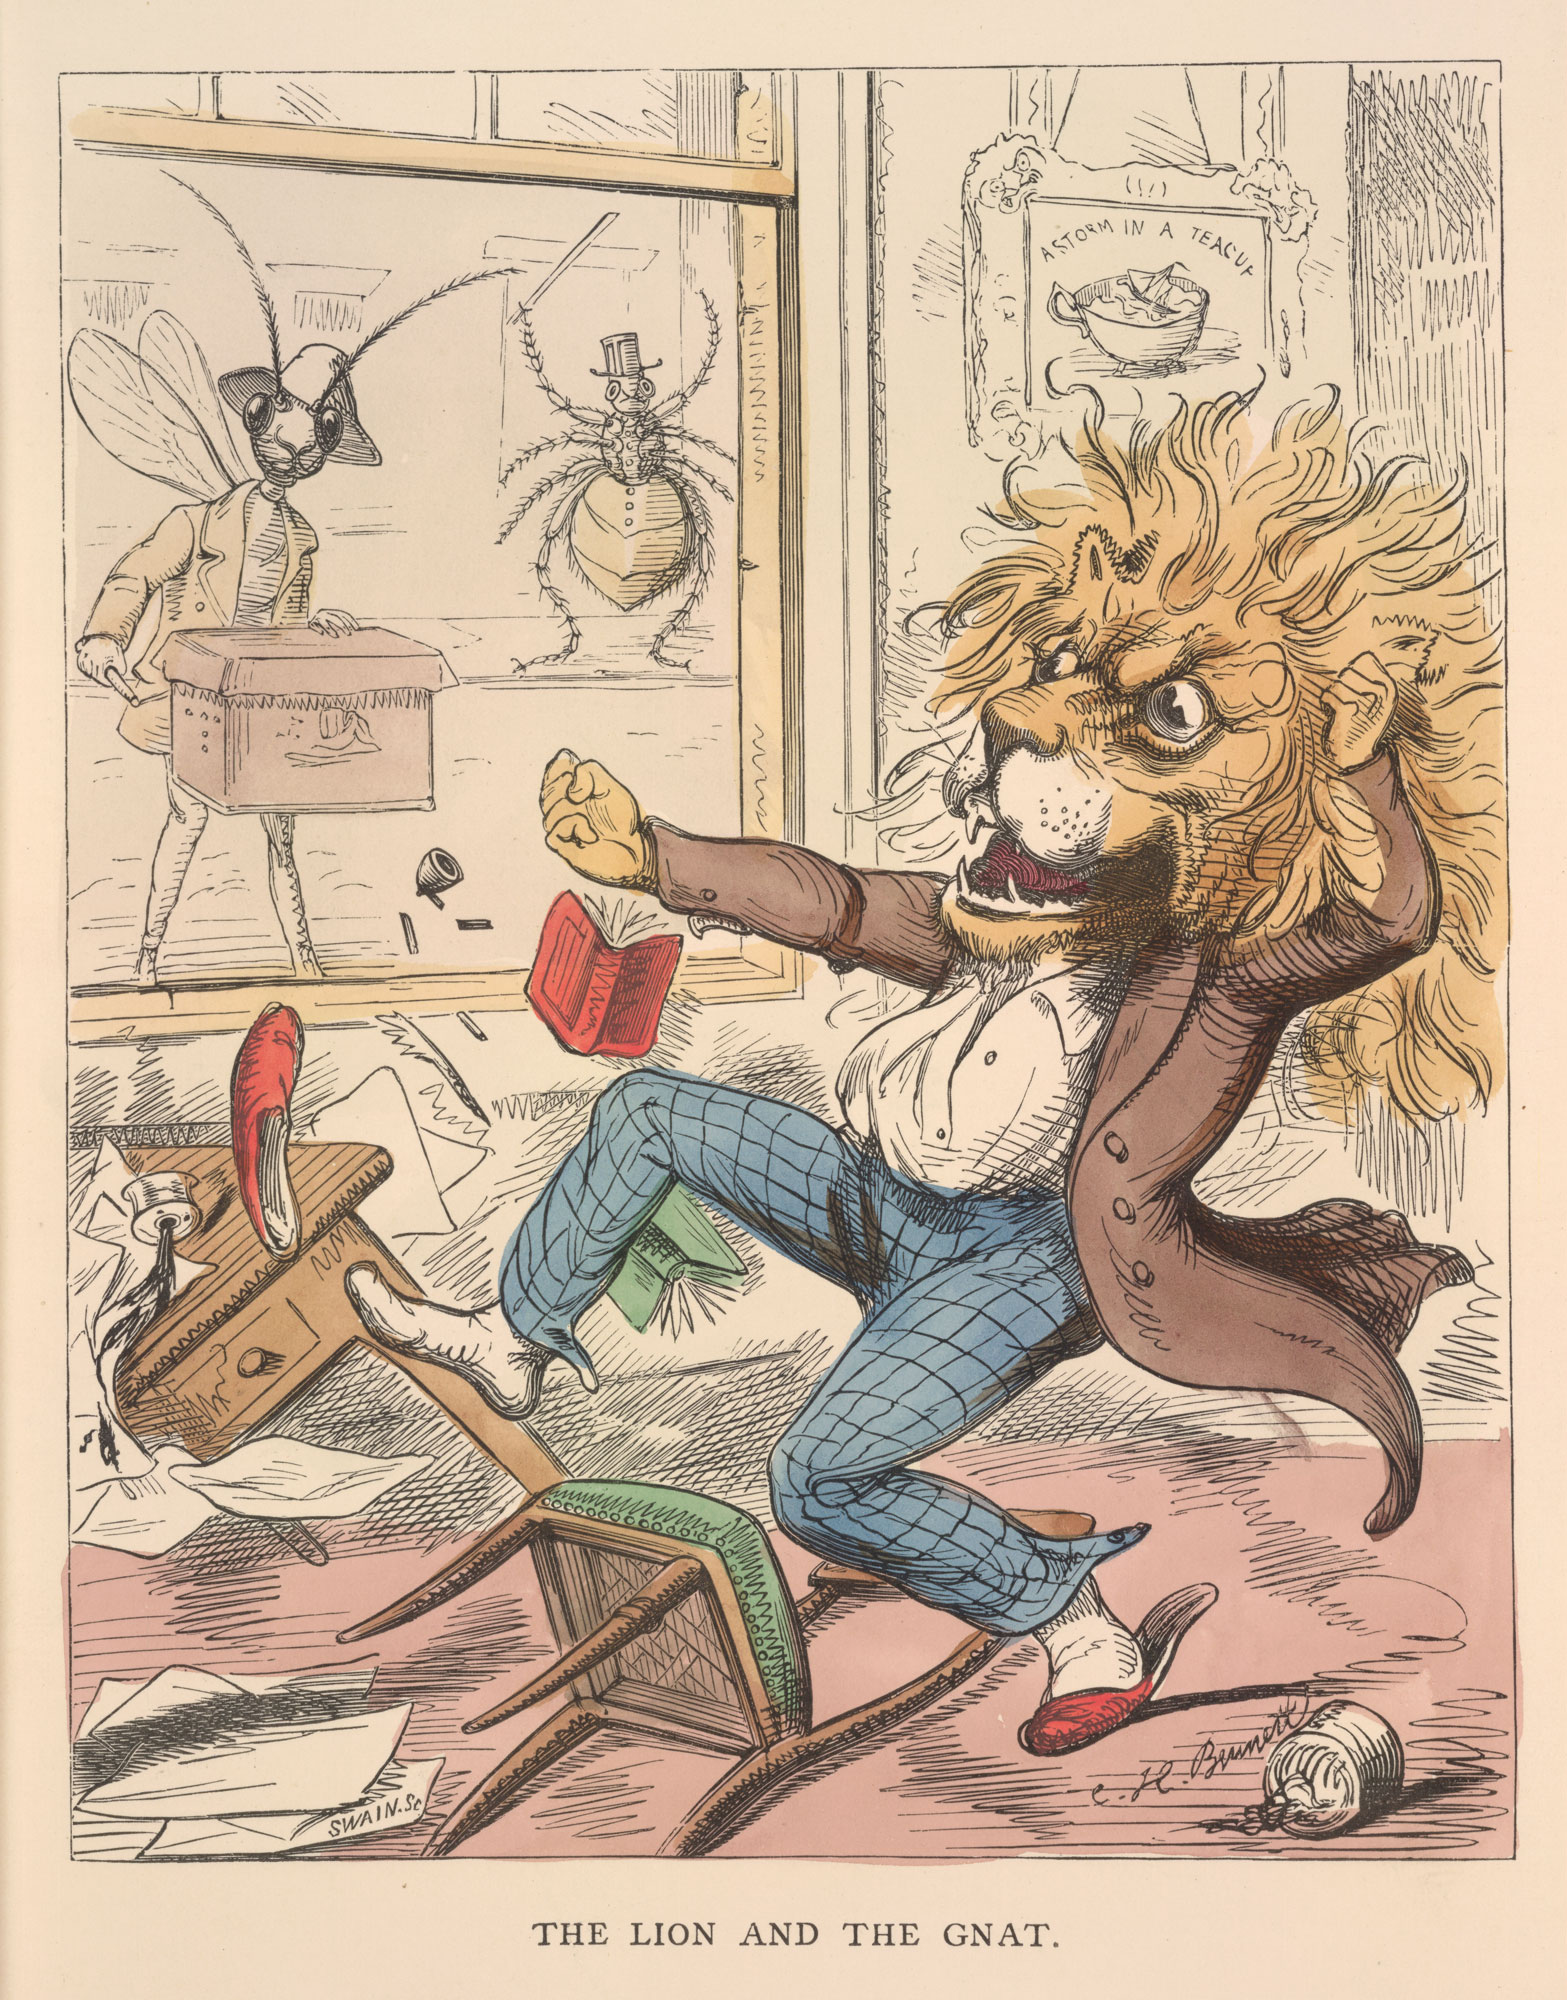 A printed page from a book, showing an image of a man with a lion's head kicking over a table and chair.